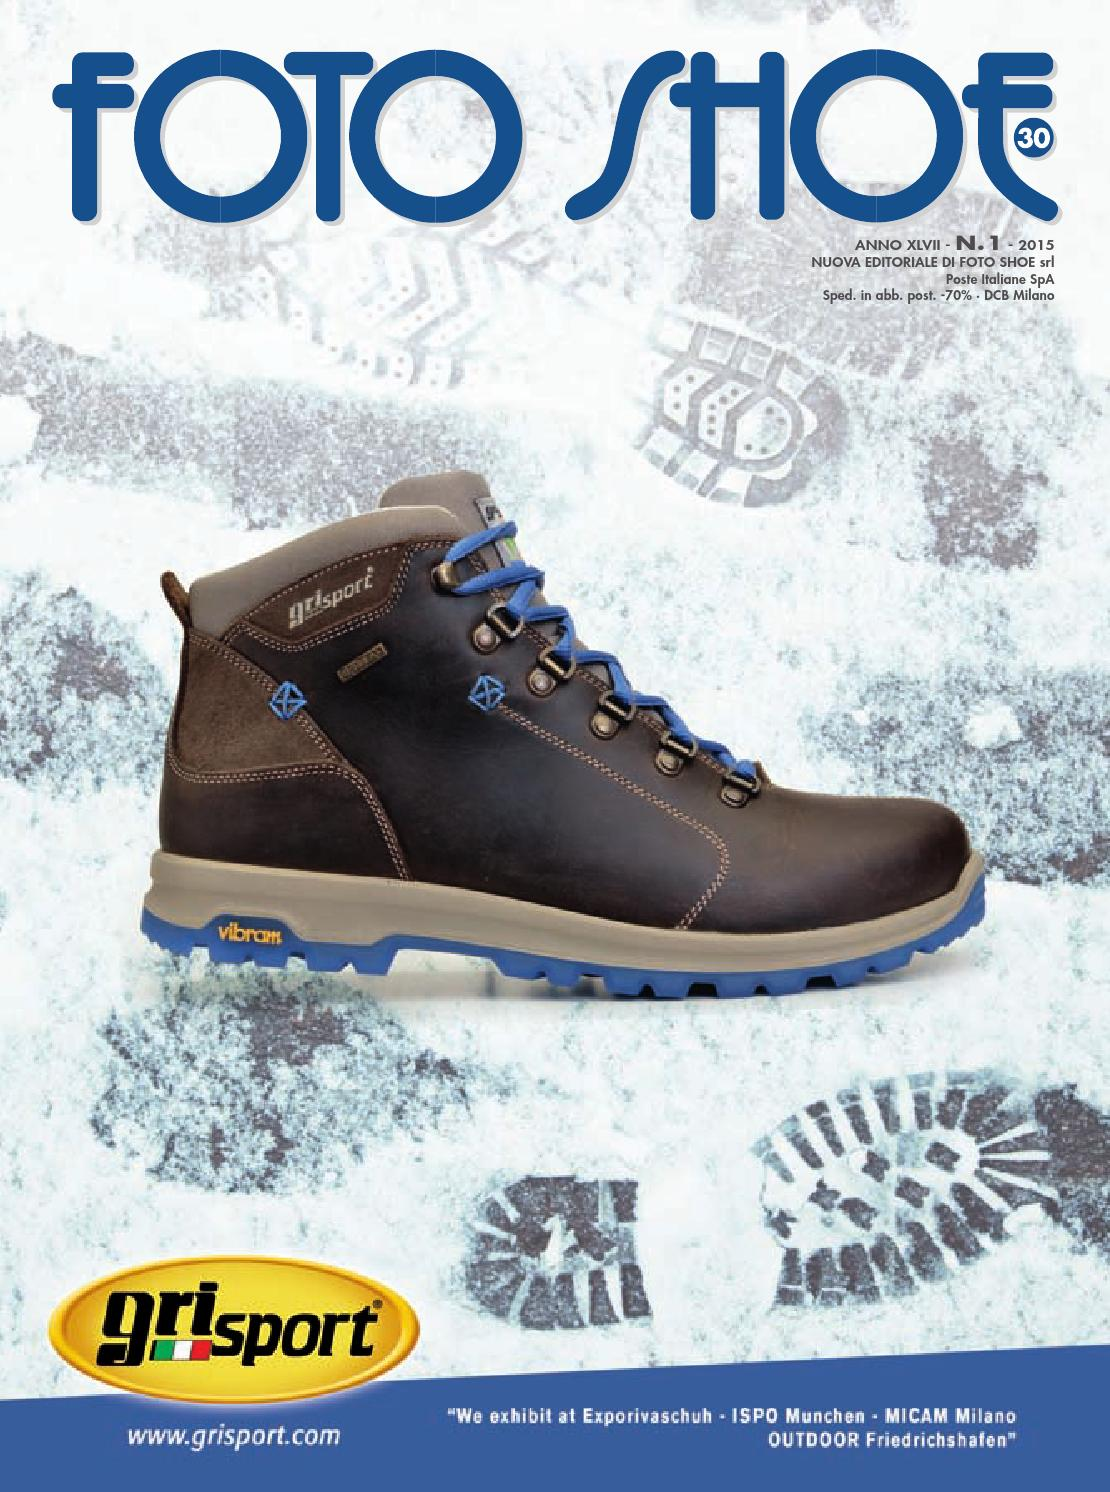 Foto shoe 30 january 2015 by ADESSO TREND - issuu 85fef51fe5e